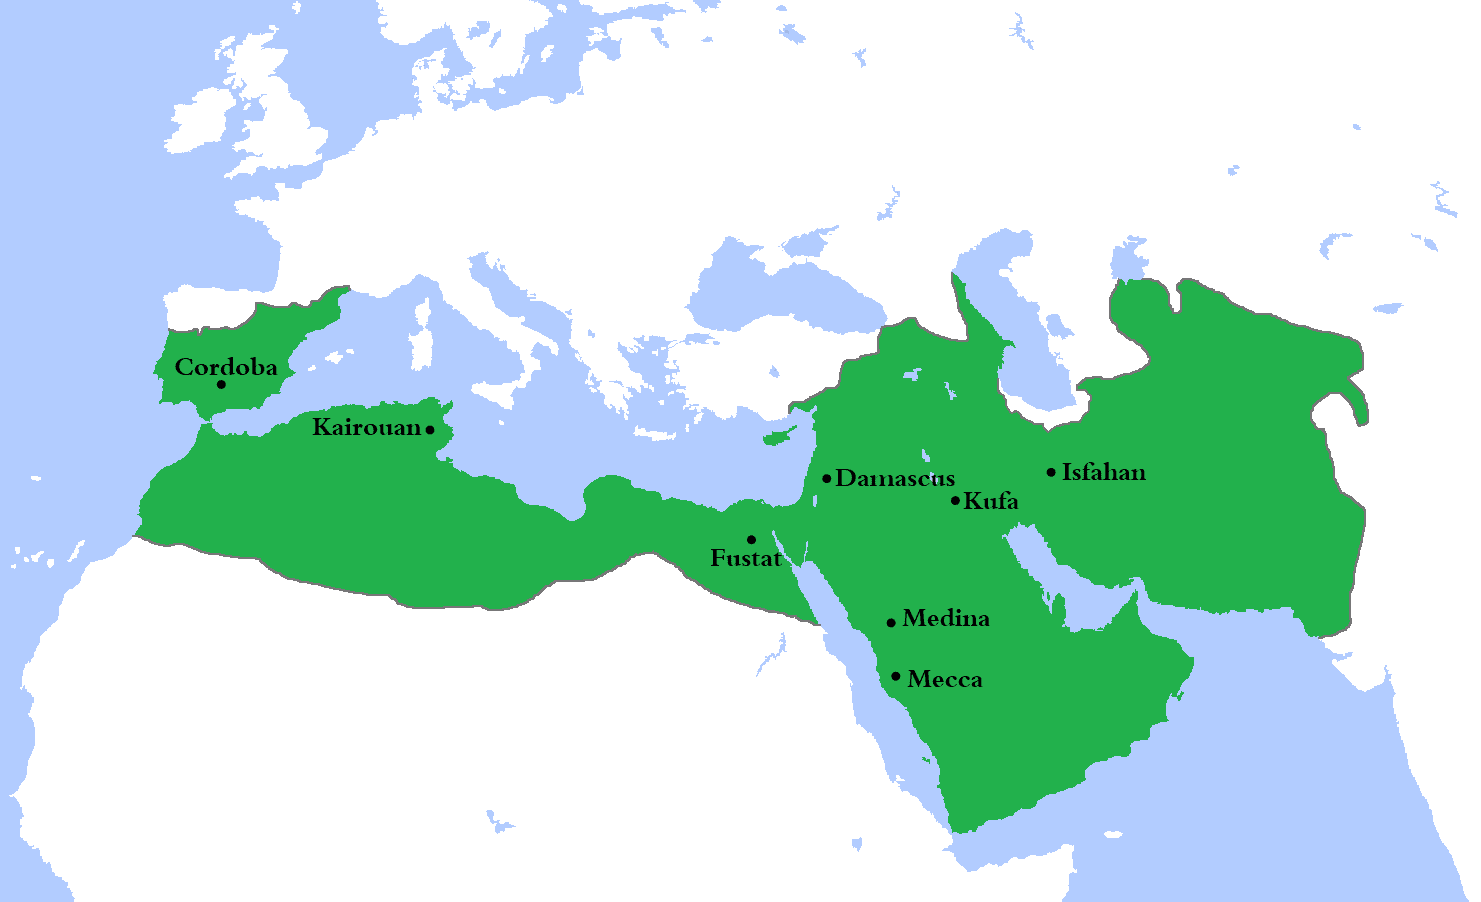 Expansion of the Ummayad Caliphate